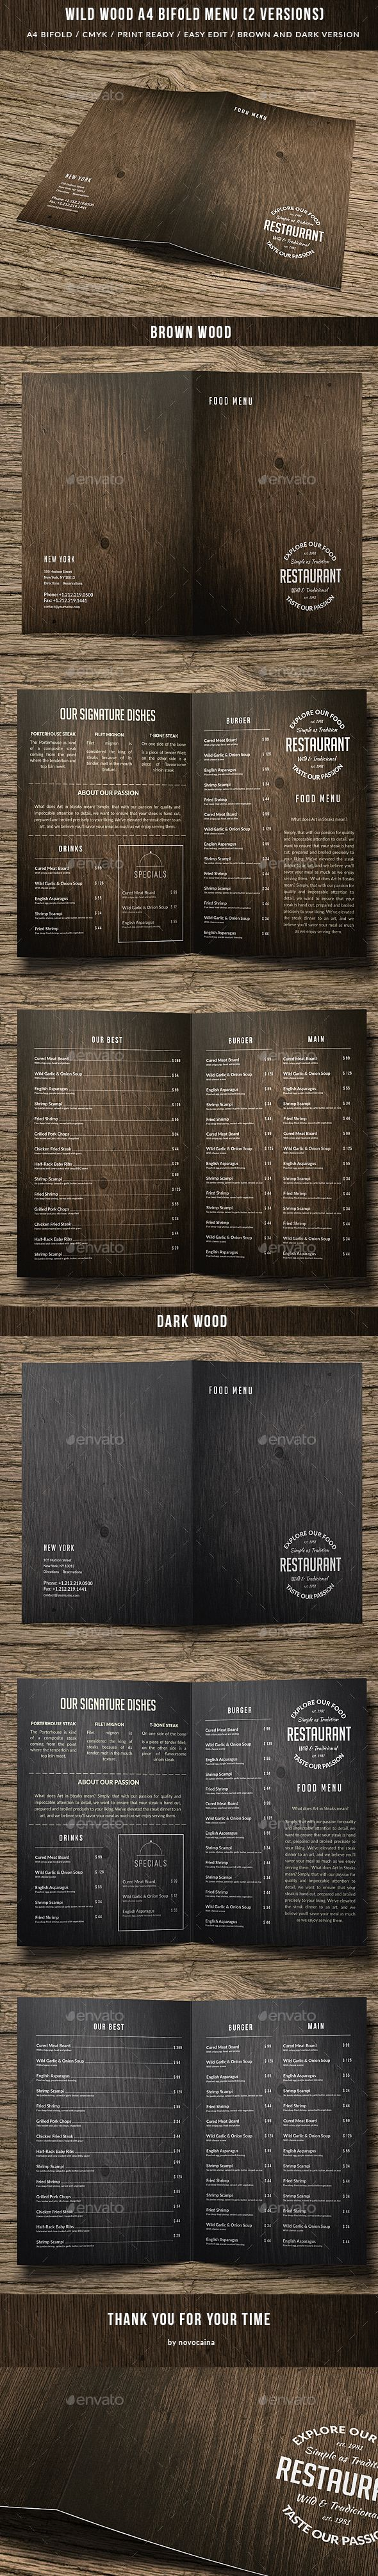 Wild Wood A4 Bifold Menu - 2 Versions Template PSD. Download here: http://graphicriver.net/item/wild-wood-a4-bifold-menu-2-versions/15645295?ref=ksioks